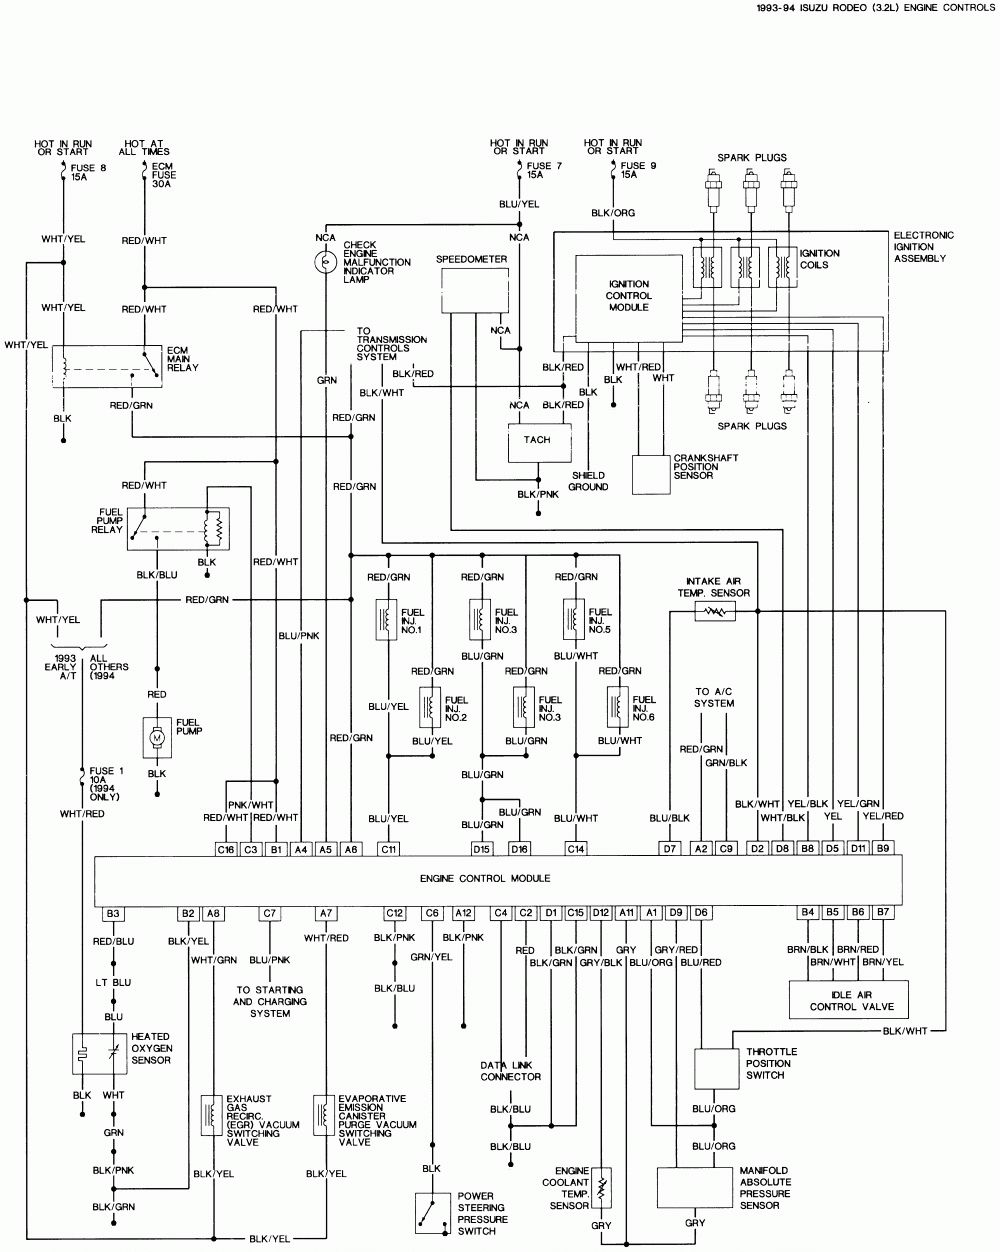 1988 isuzu pickup wiring diagram 931 isuzu elf wiring diagram wiring resources  931 isuzu elf wiring diagram wiring